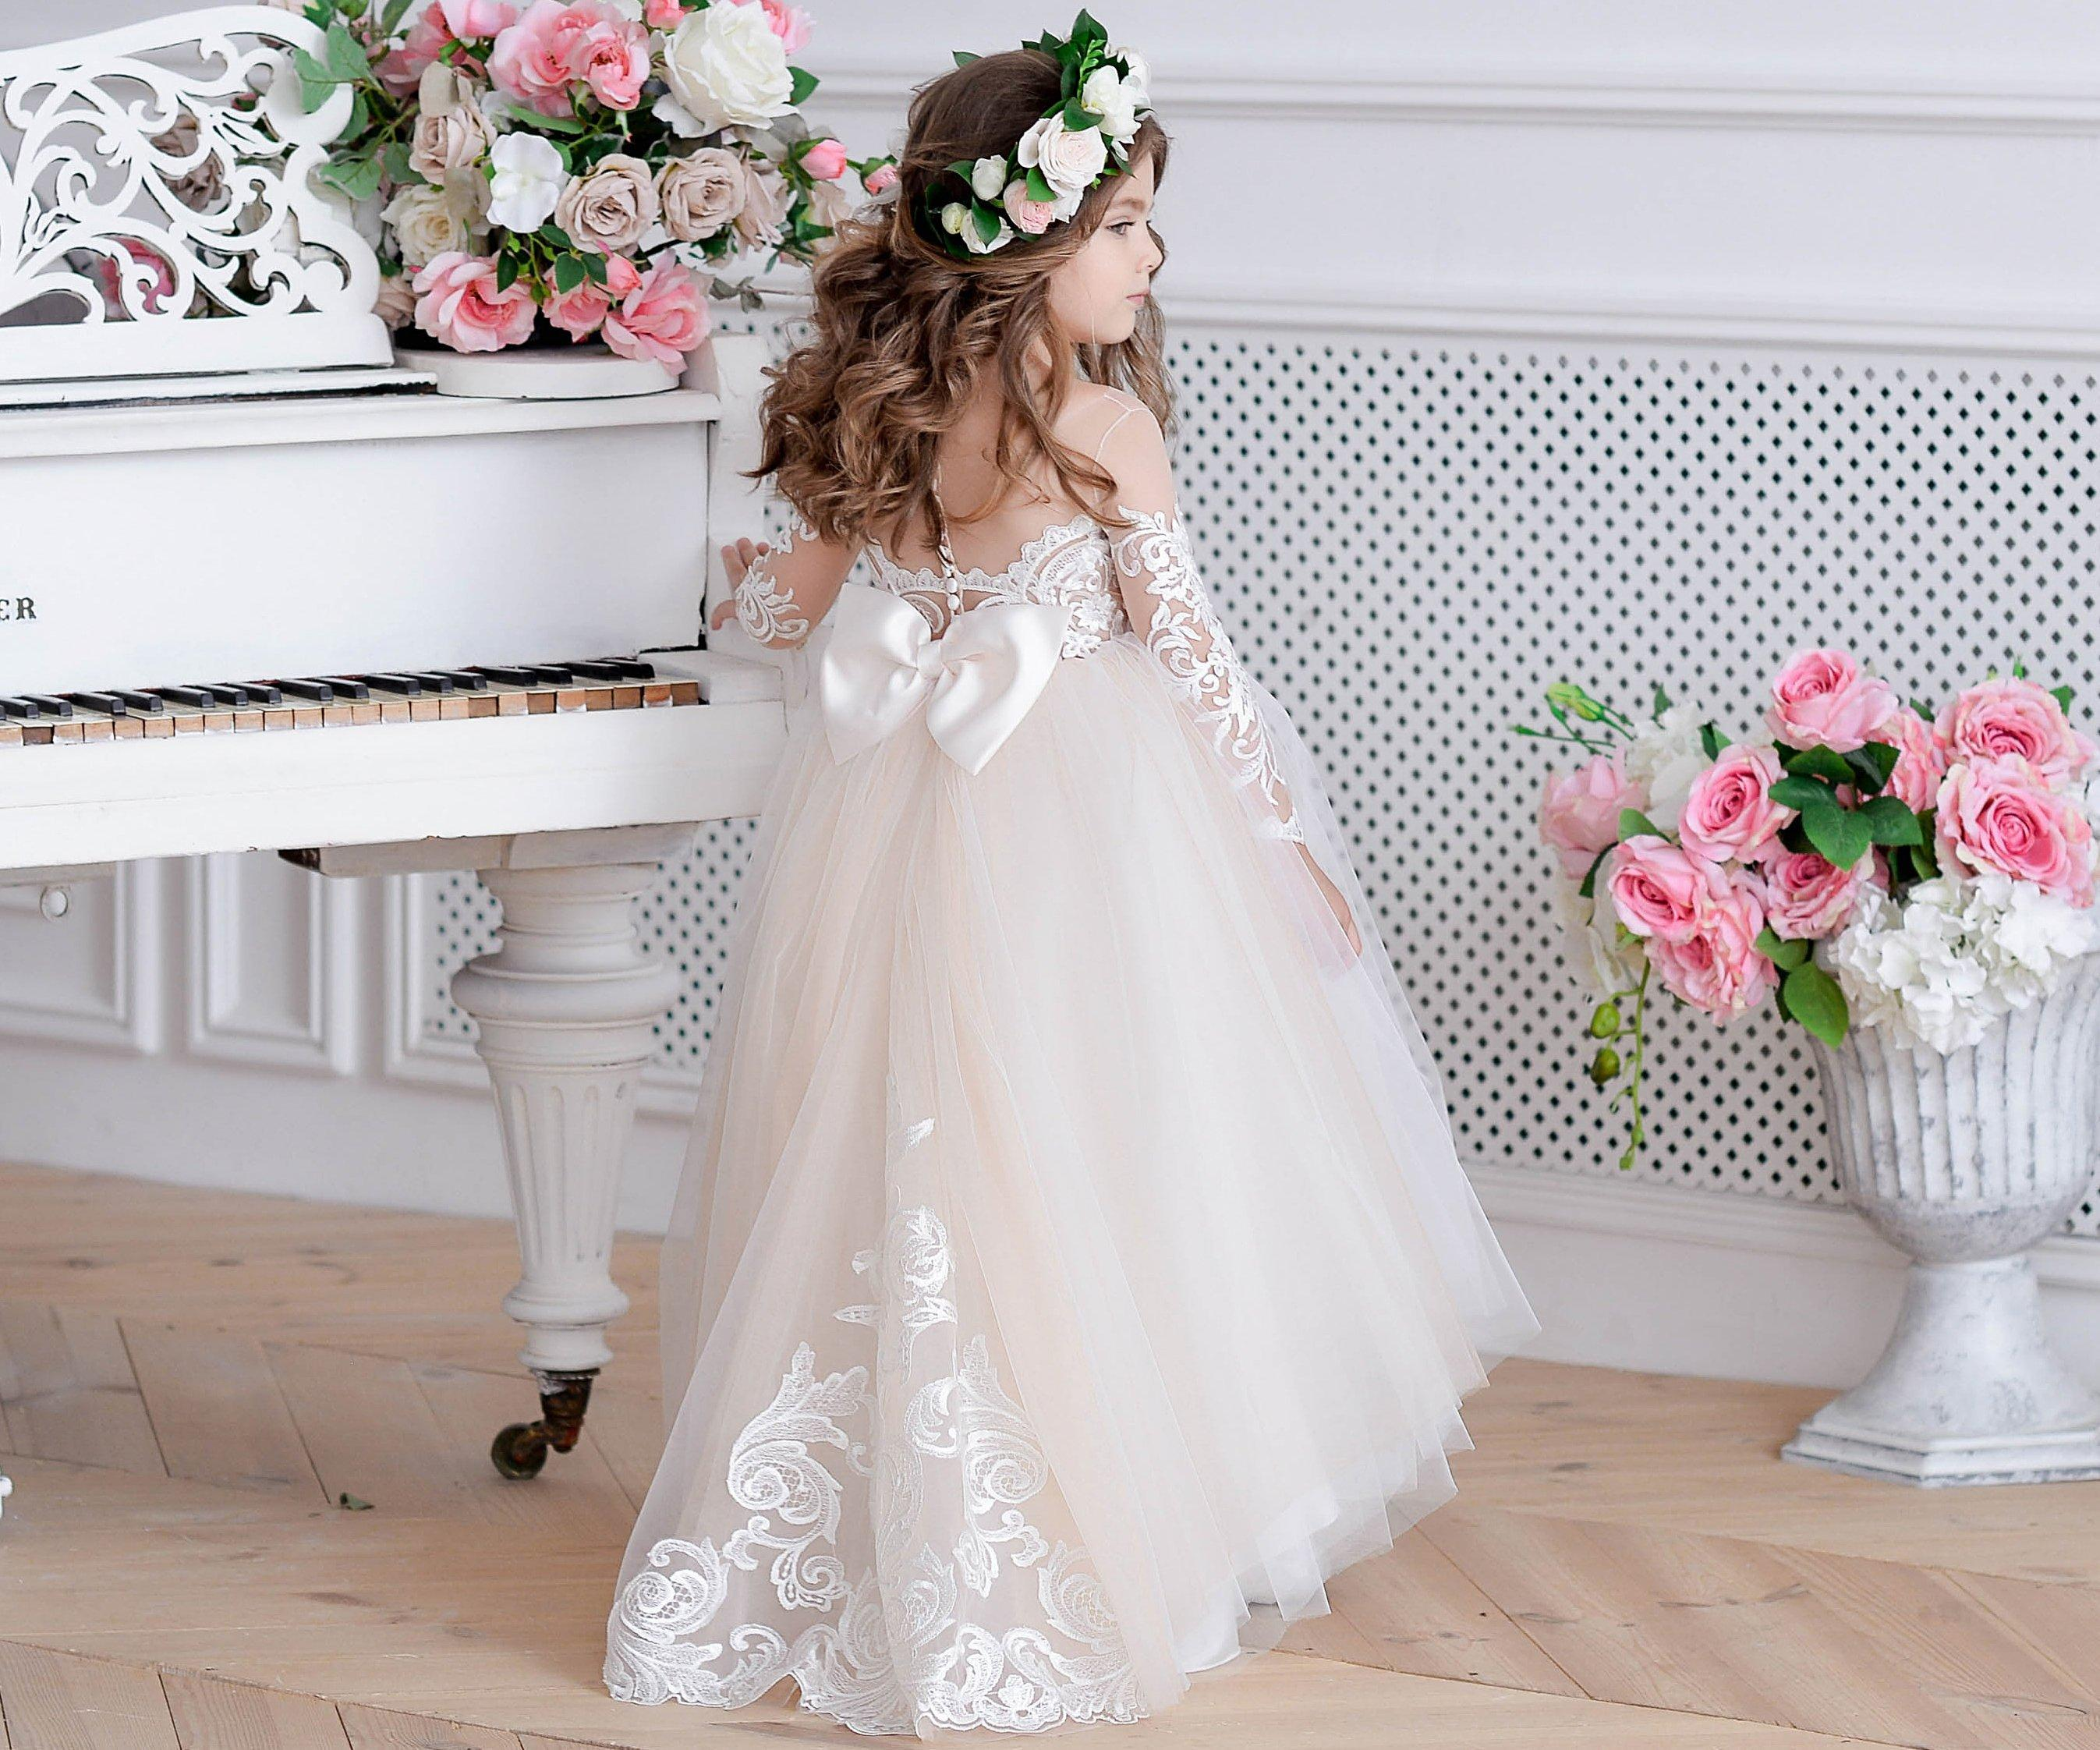 525d14e3 White Ivory Champagne Flower Girl Dresses Tulle Toddler Lace Champagne  Bridesmaid Baby Special Wedding Formal Occasion Custom Size Baby Pink Flower  Girl ...